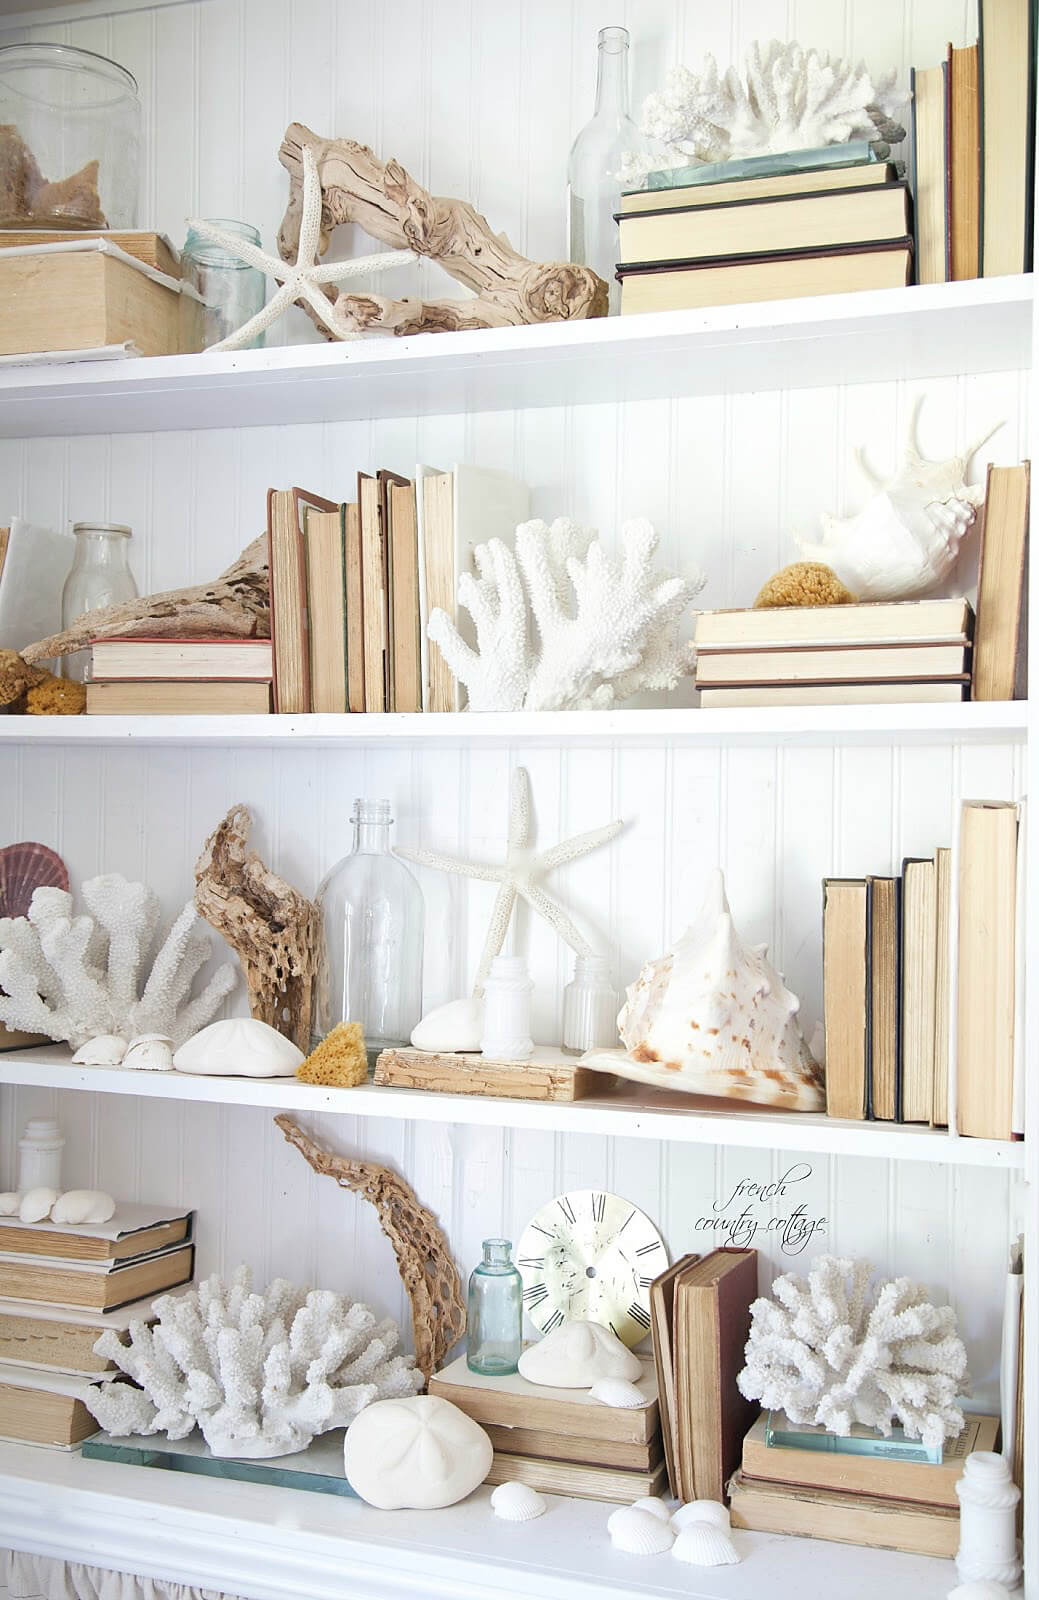 A Bookcase Crawling with Coral and Shells